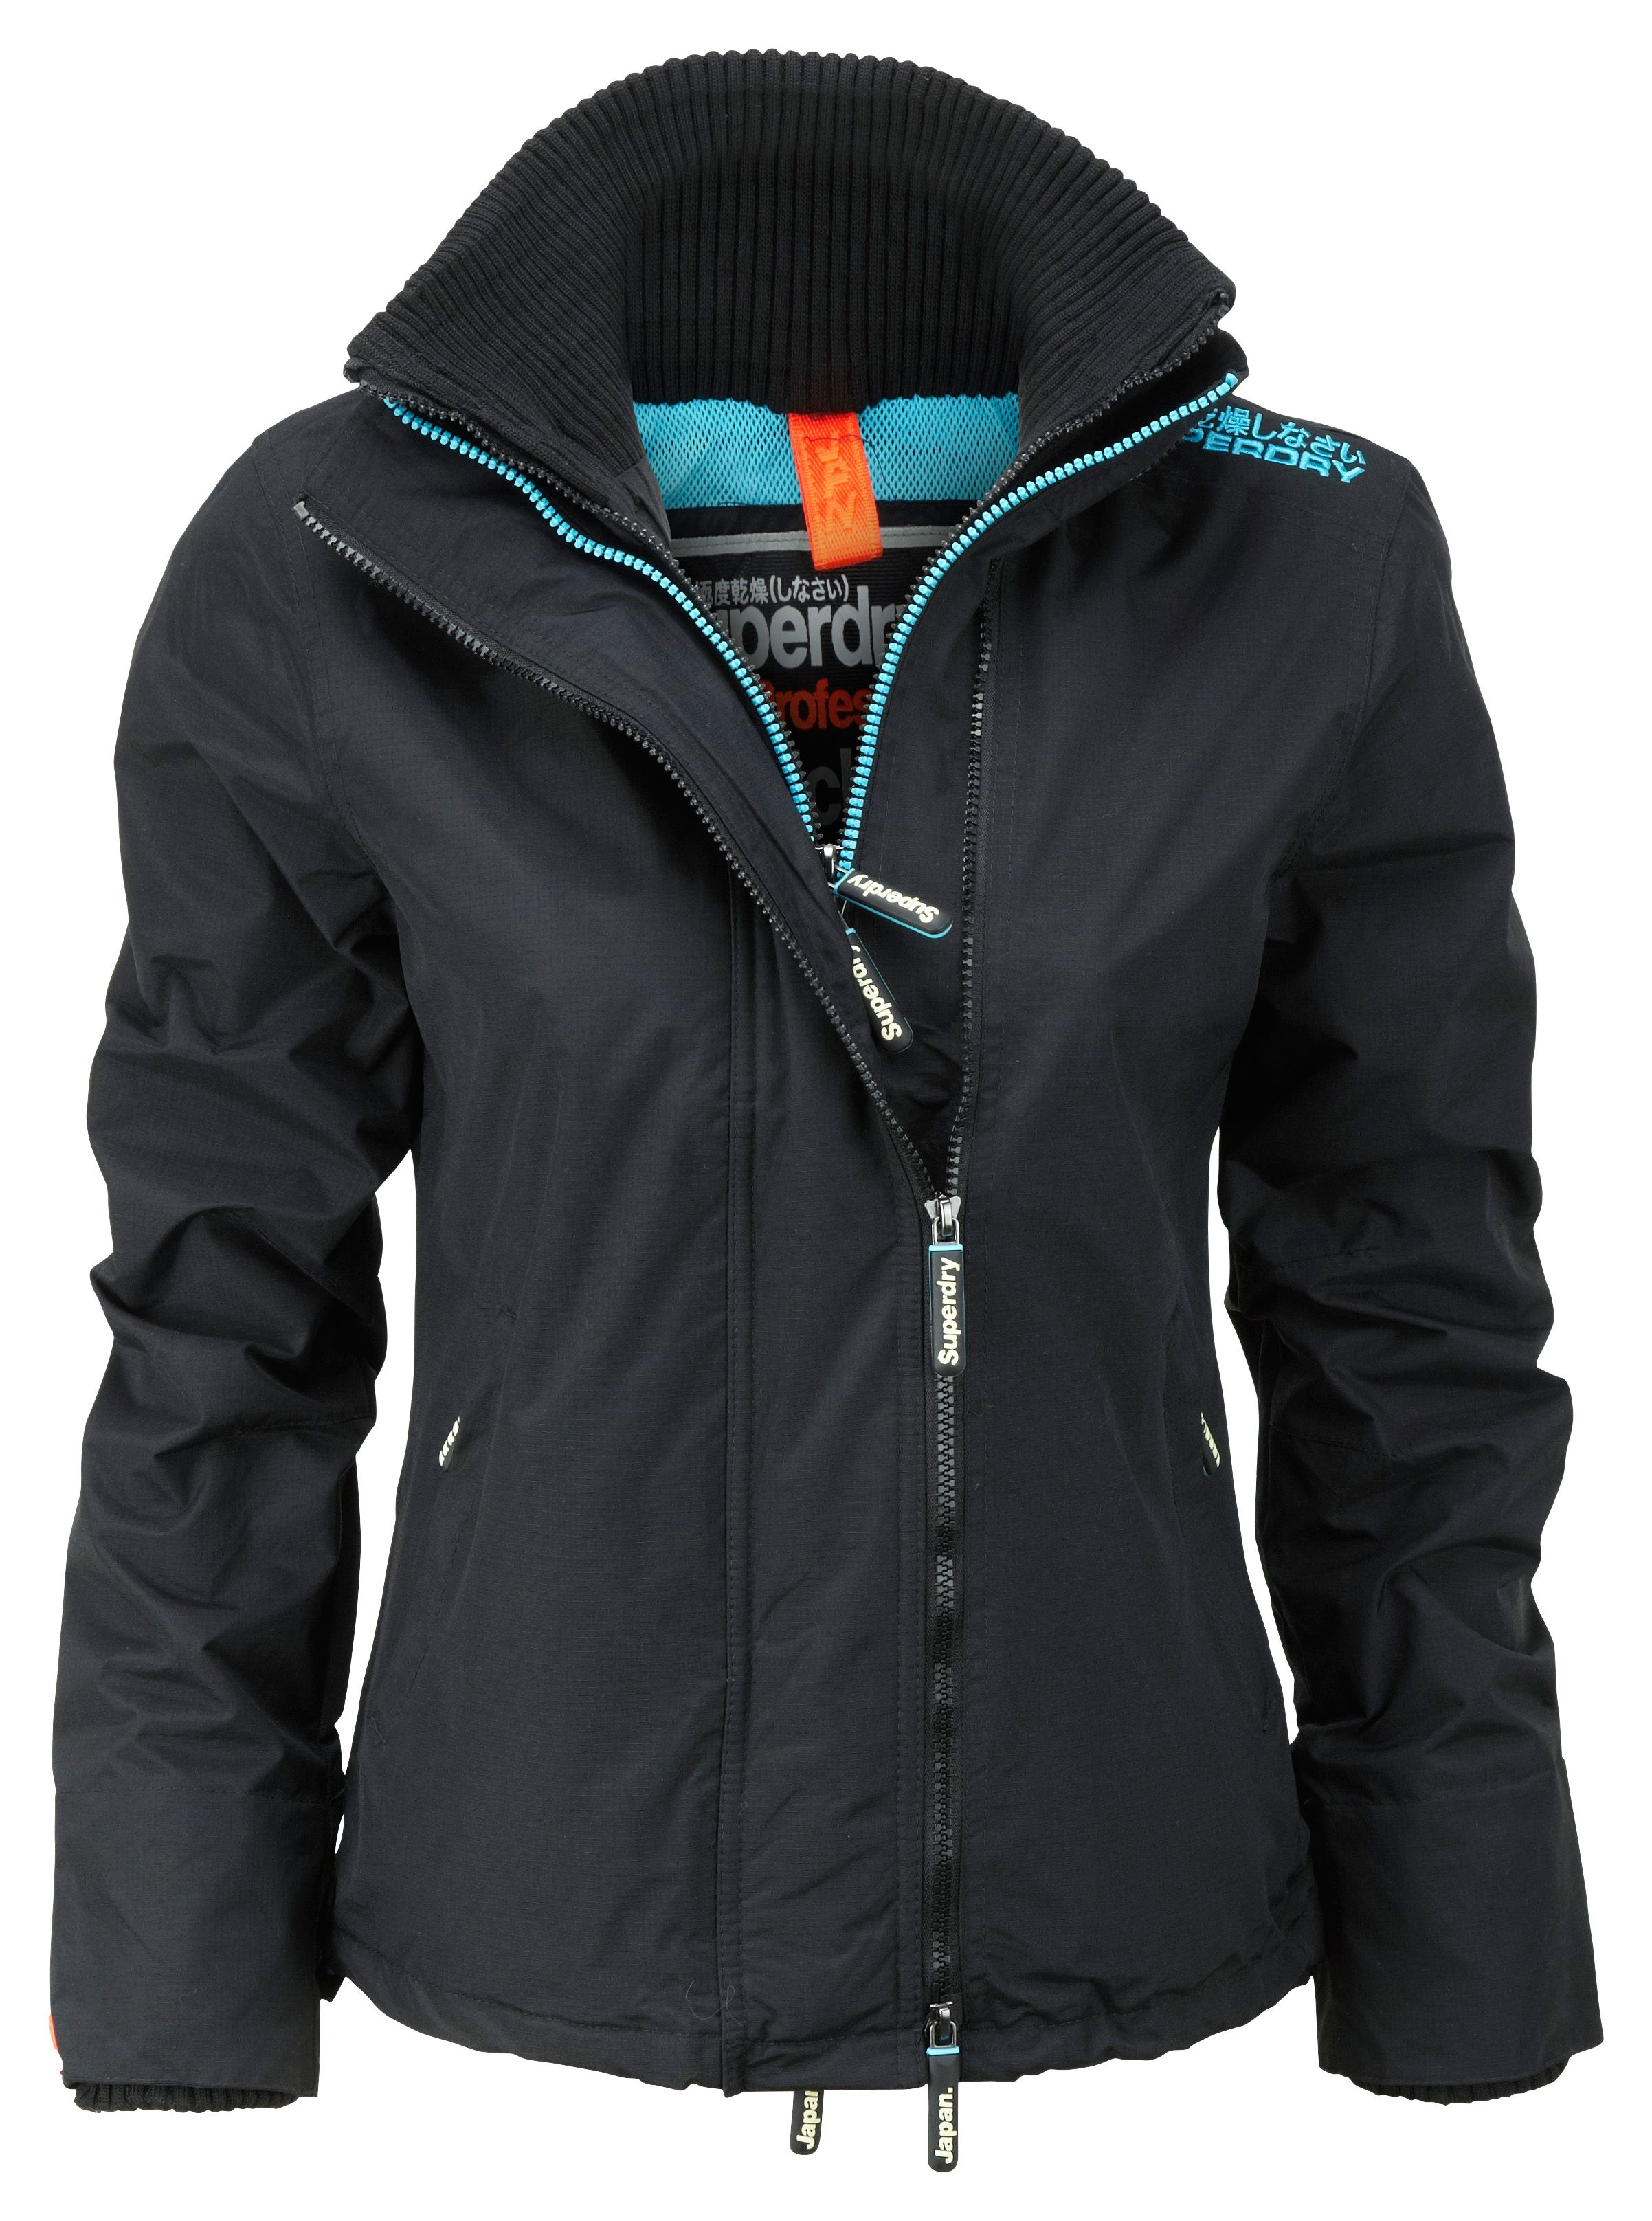 Technical wind cheater jacket